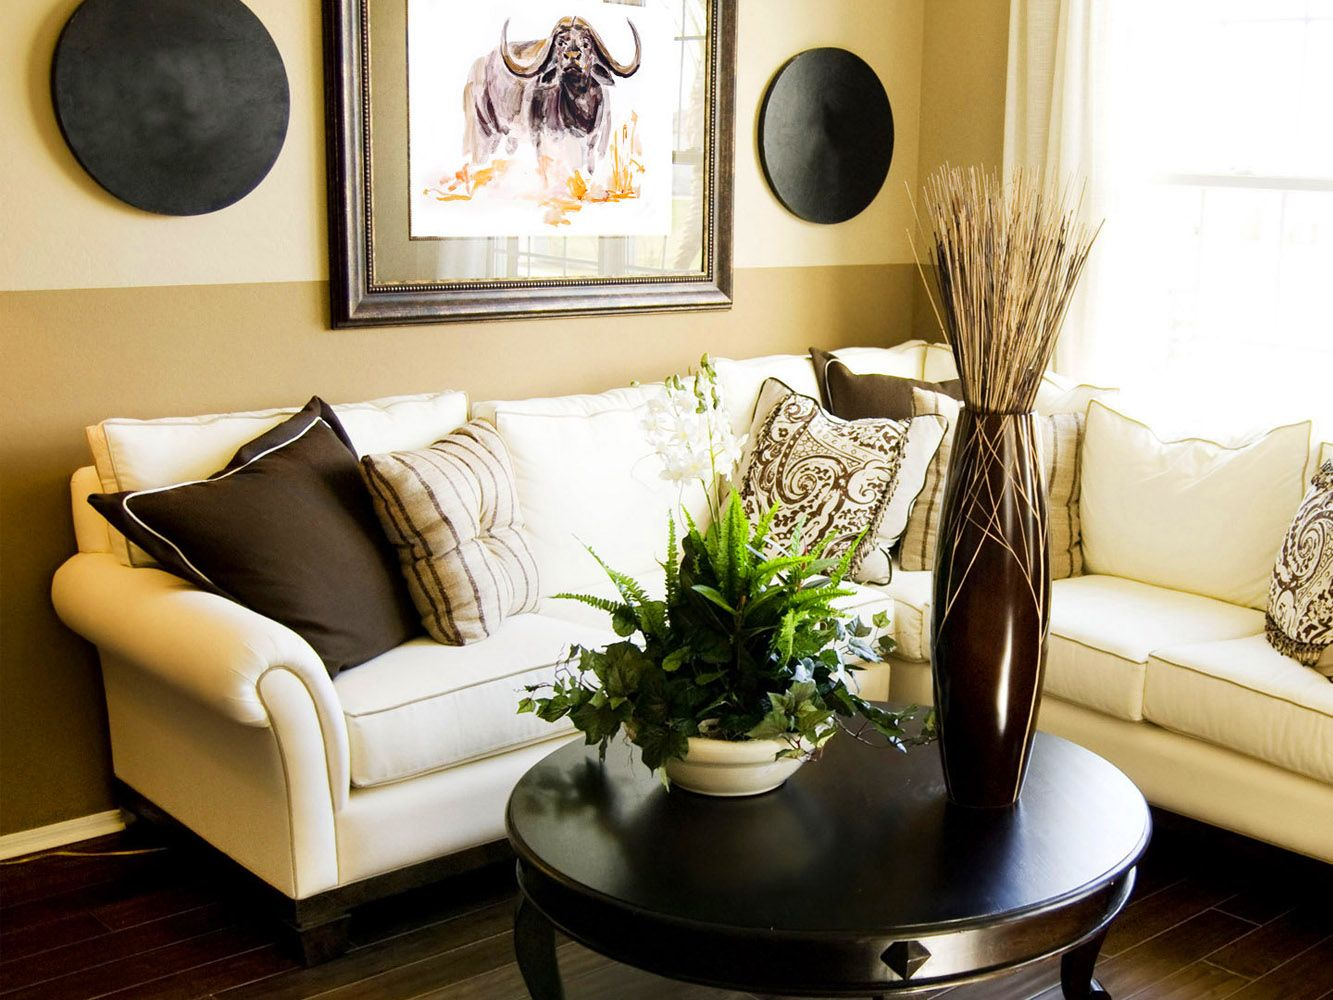 How To Create African Safari Home Dcor Interior Design Within Decor With Leafy And Animal Look